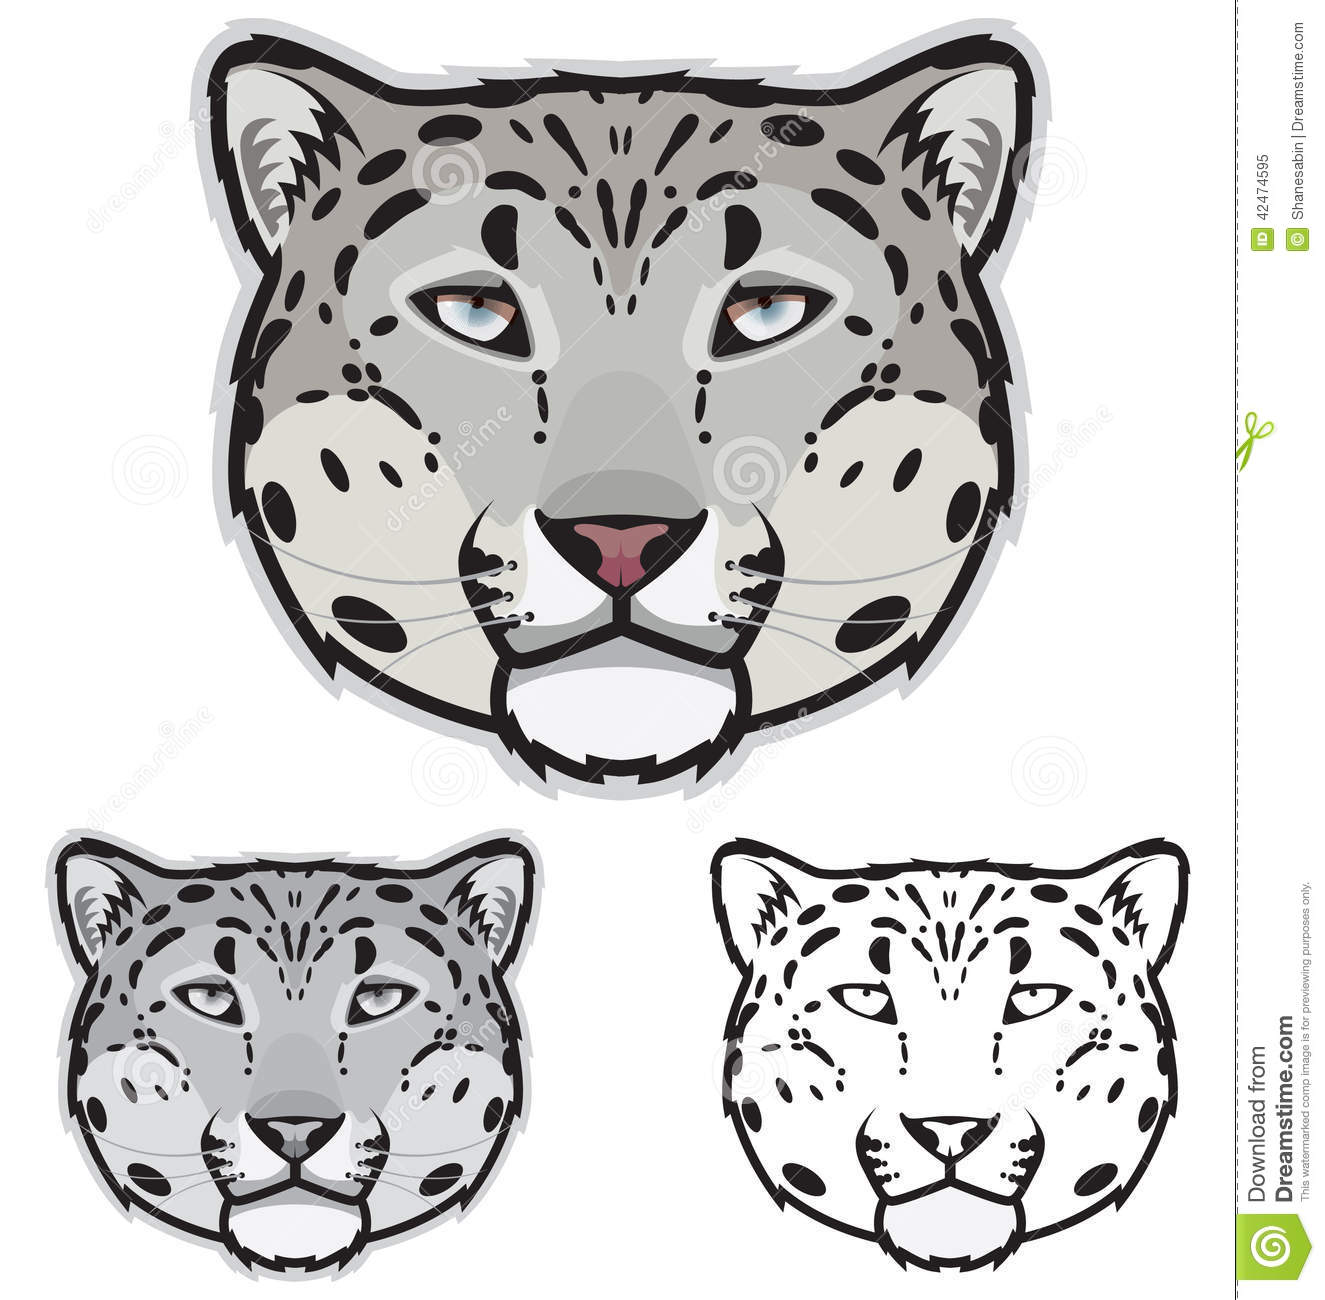 Snow Leopard Faces Stock Vector Illustration Of